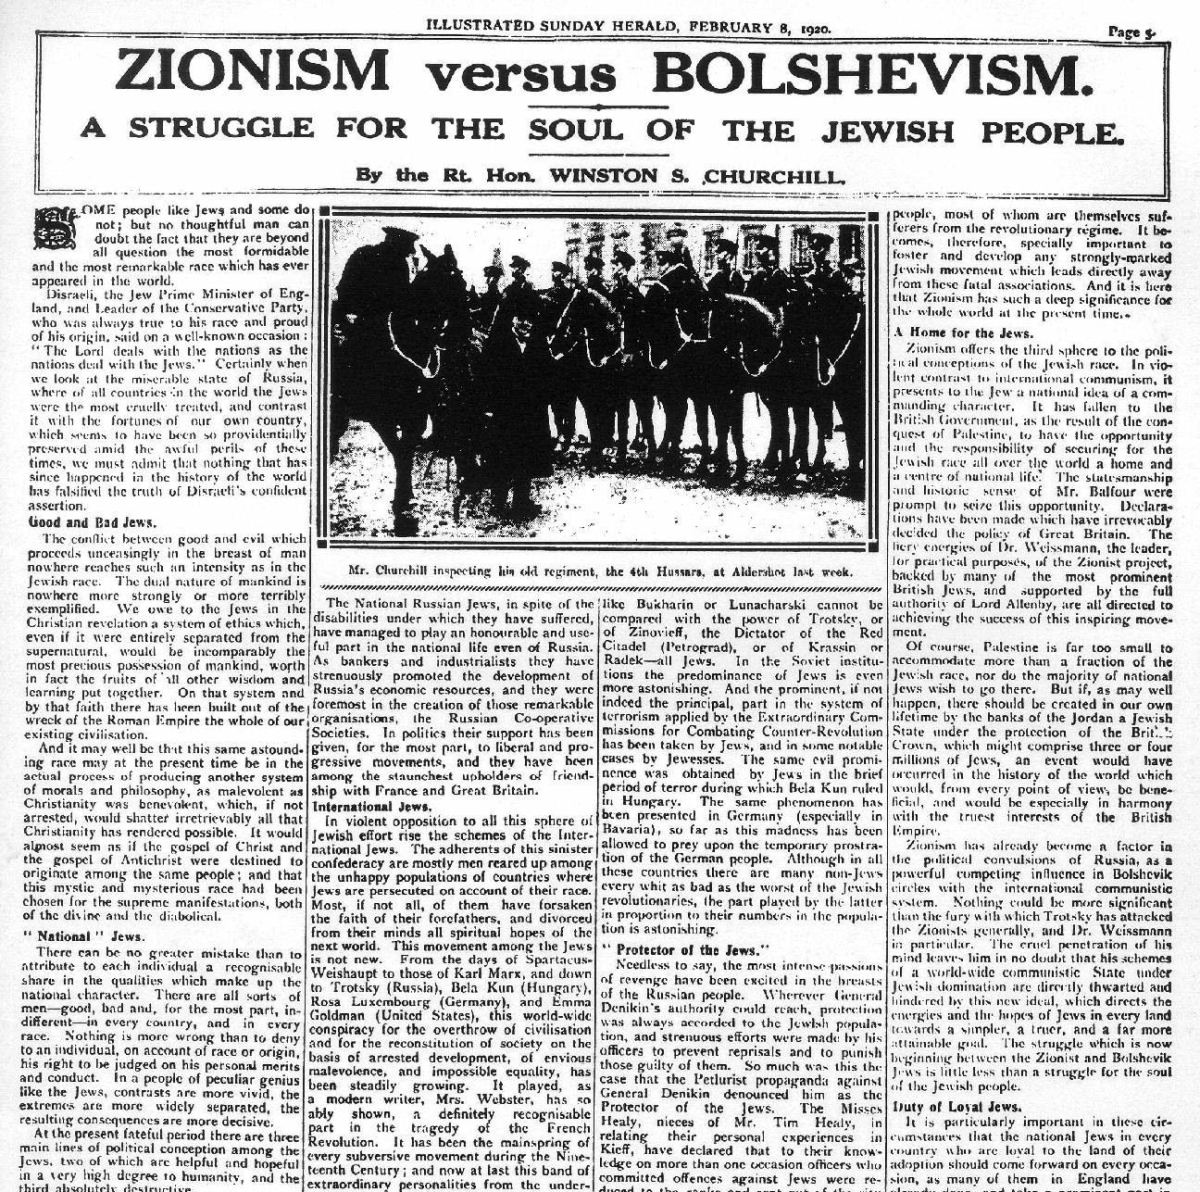 Zionism vs Bolshevism by Winston Churchill